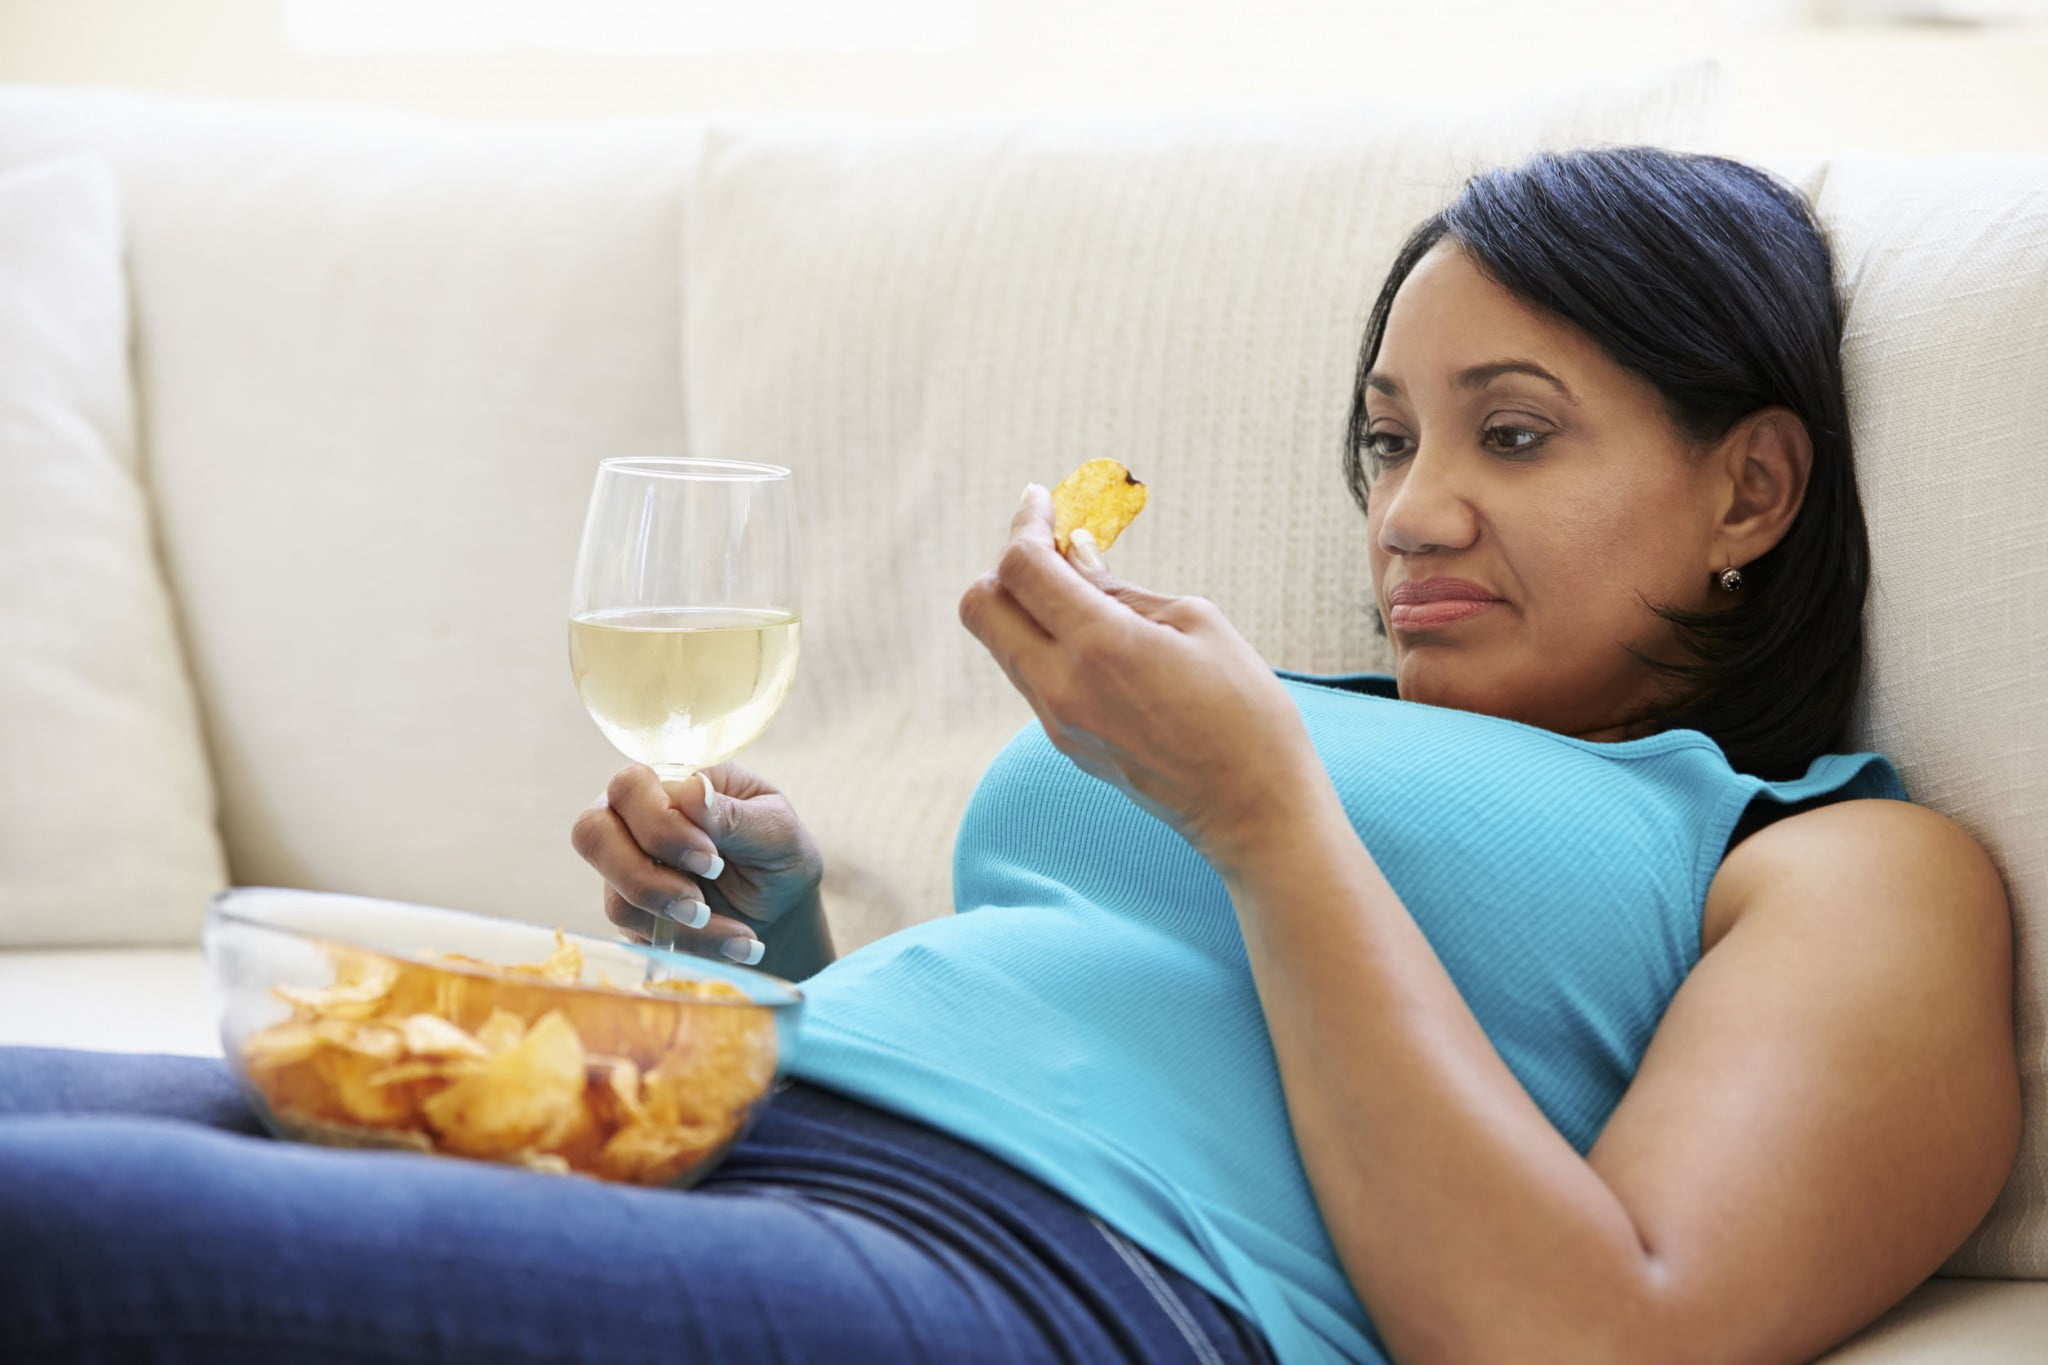 woman eating chips and drinking wine